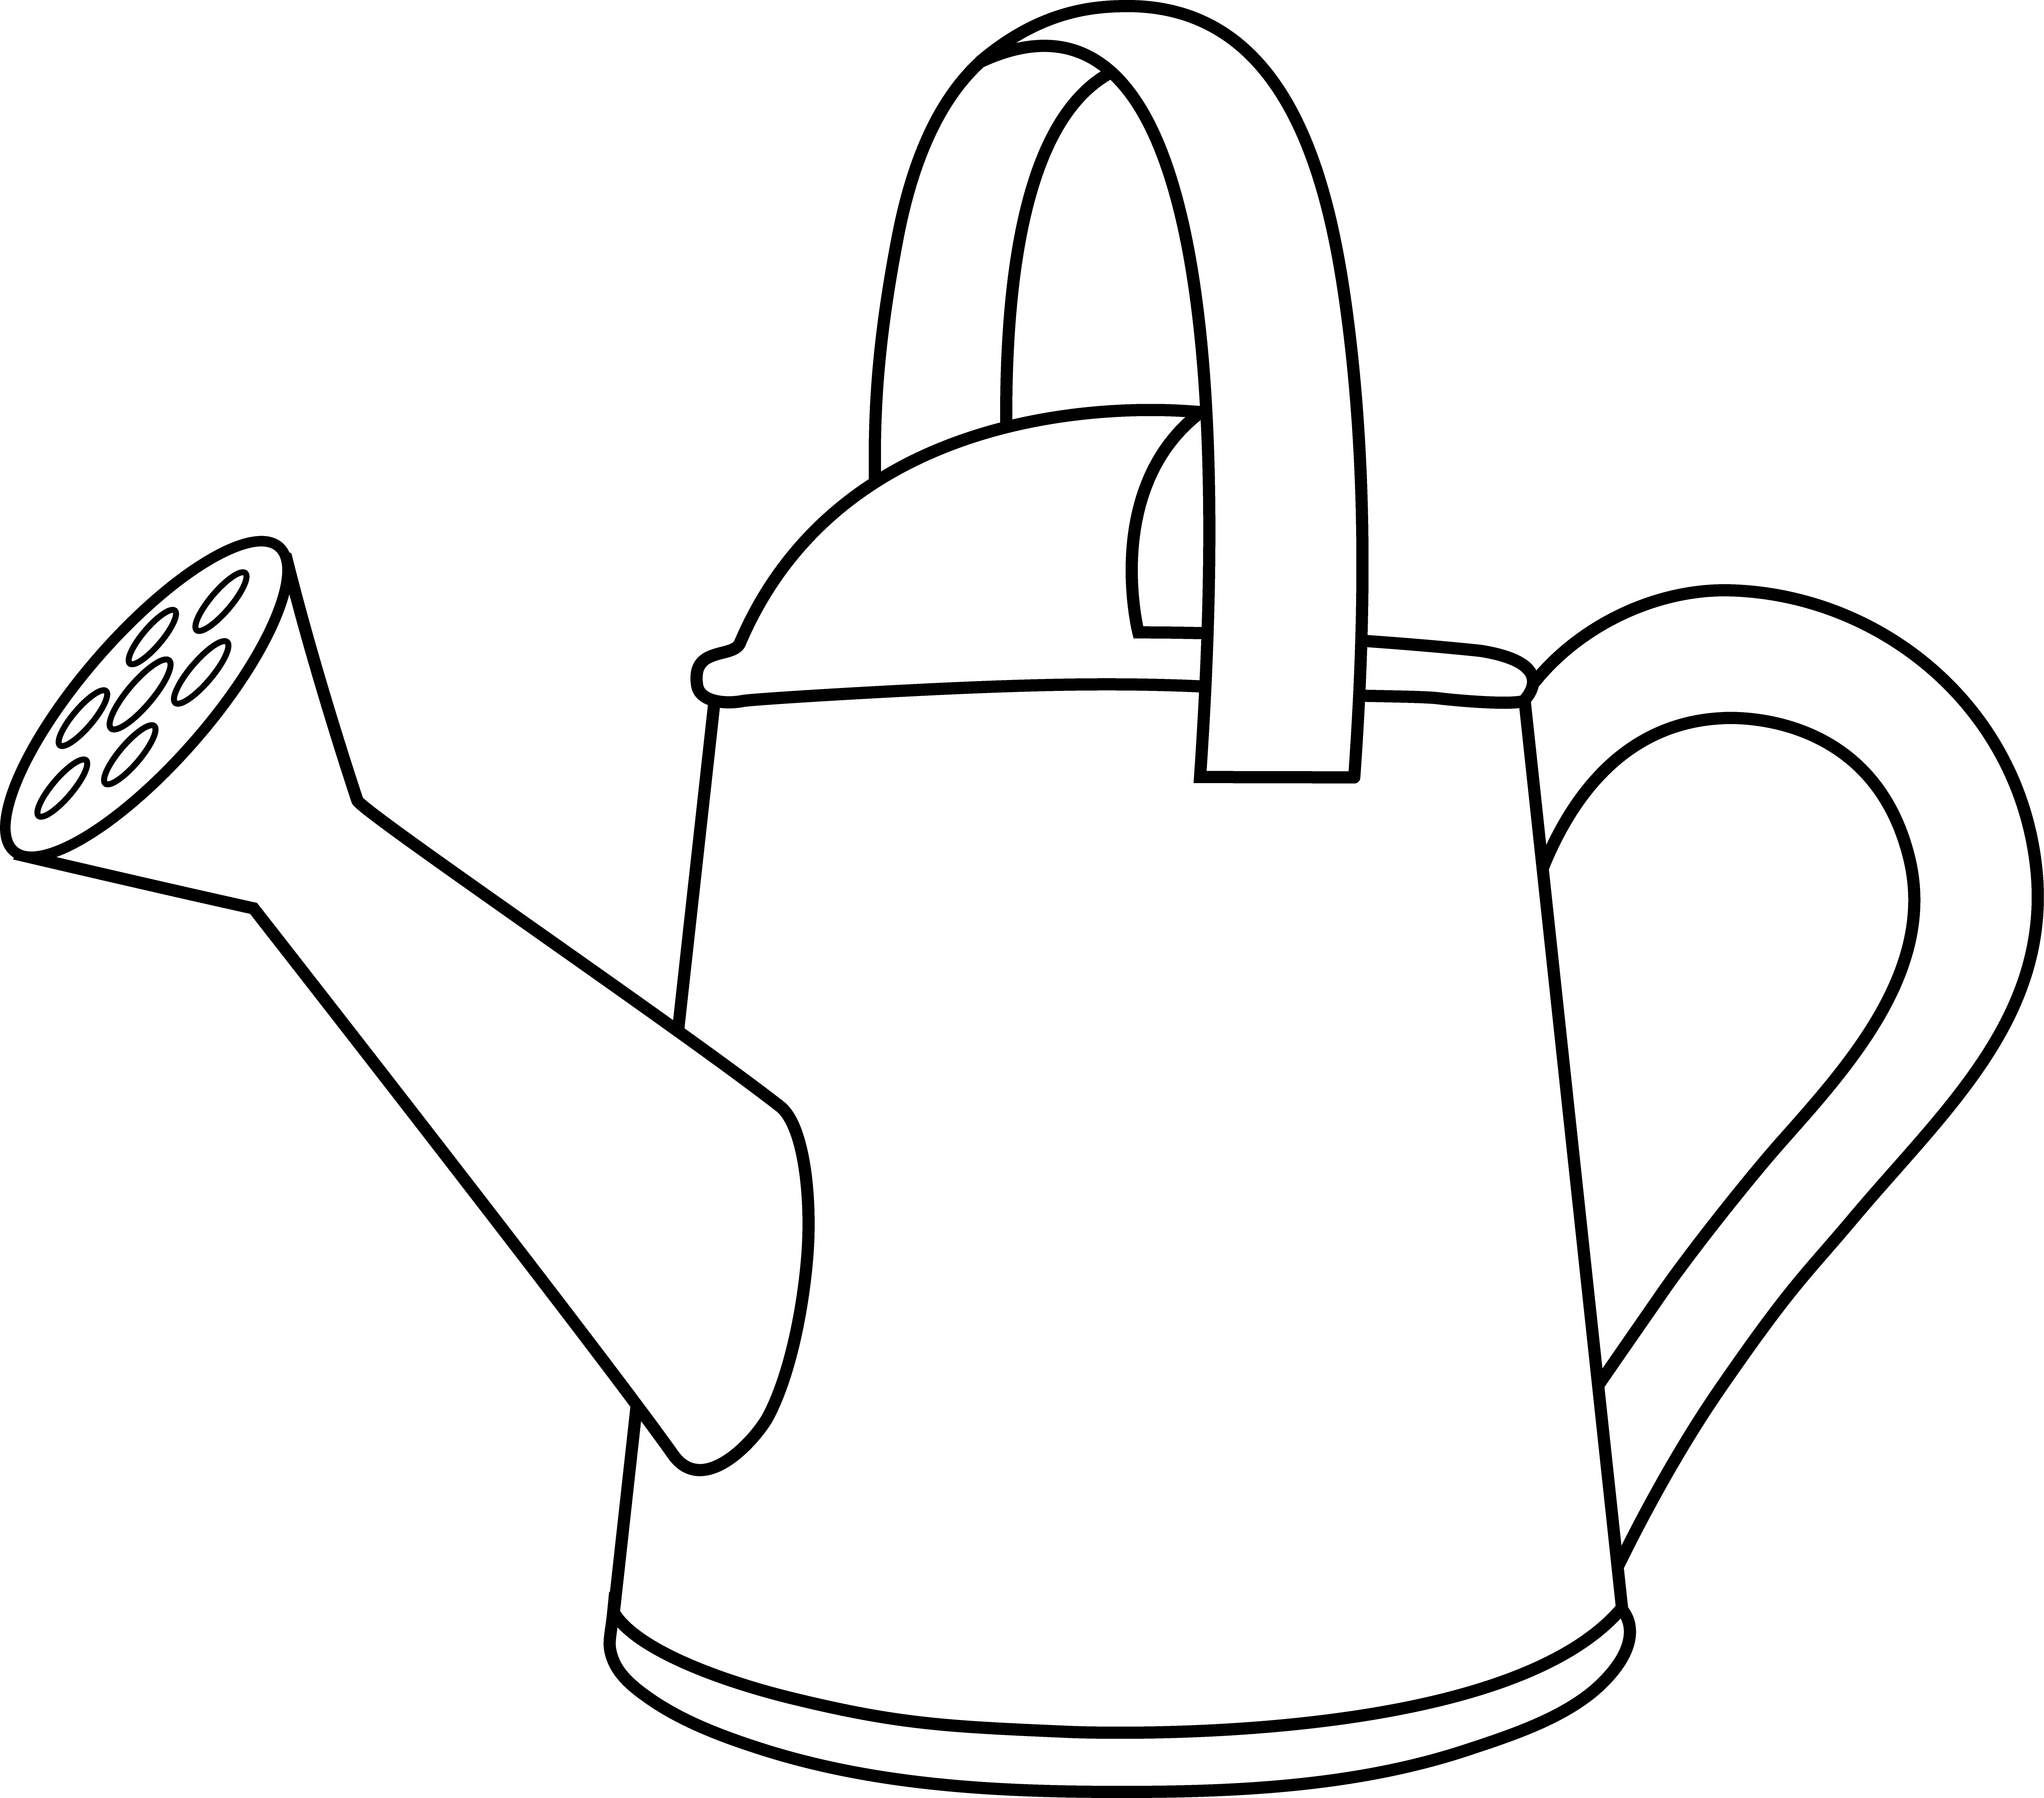 Watering can pictures clipart clip freeuse library Watering Can Lineart to Color in | Cricut and SVG | Coloring ... clip freeuse library